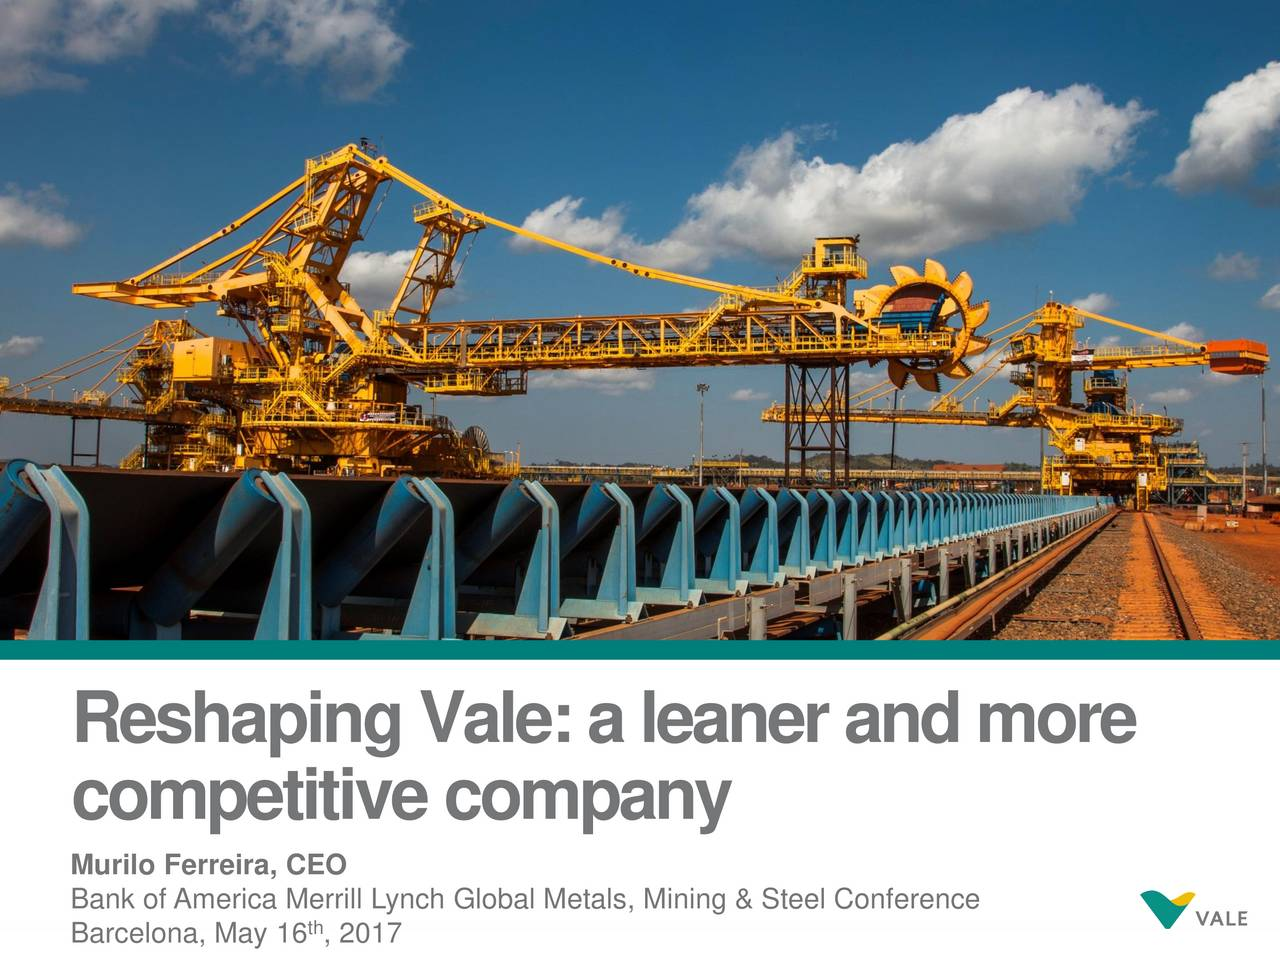 ReshapingVale:aleanerandmore competitivecompany Murilo Ferreira, CEO Bank of Amerith Merrill Lynch Global Metals, Mining & Steel Conference